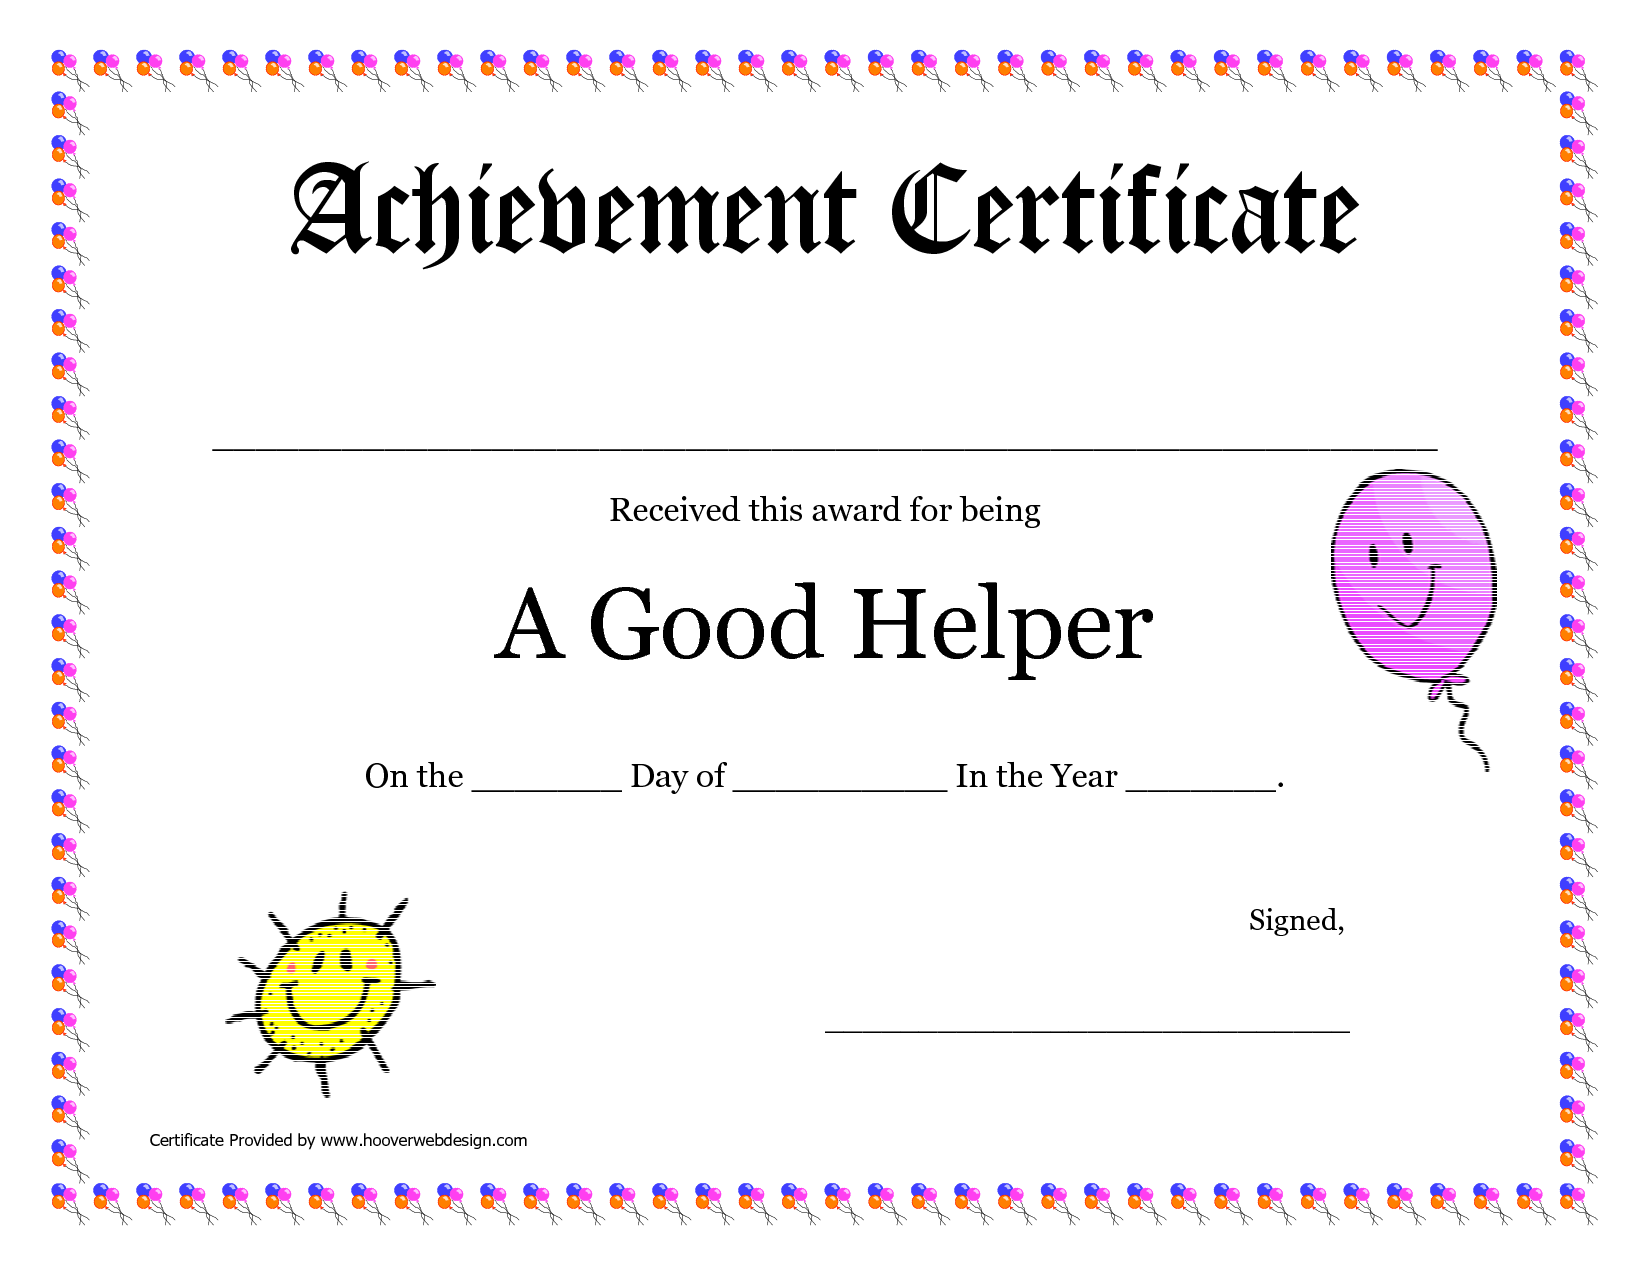 Certificate of awesomeness free printable certificates printable award certificates for teachers good helper printable award certificate pdf xflitez Choice Image